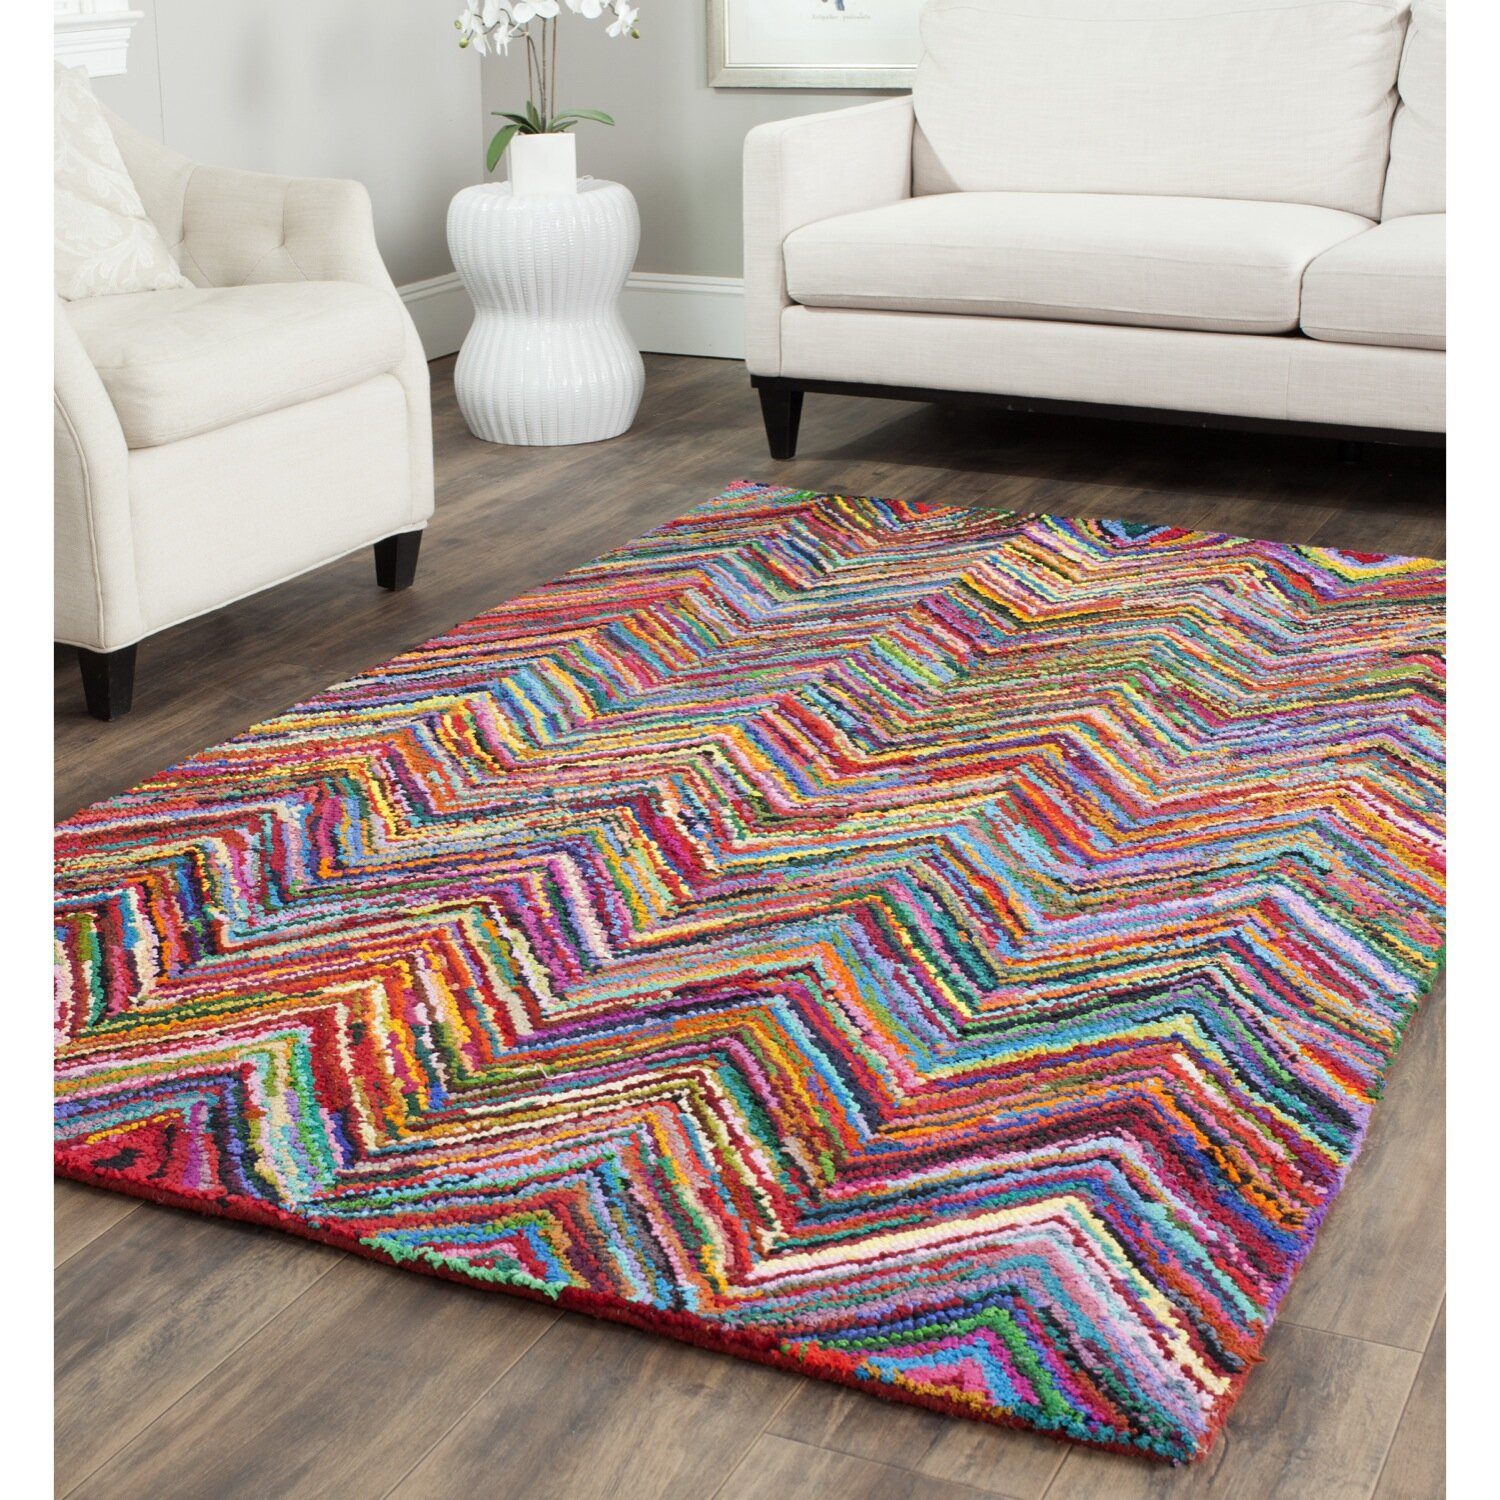 Chevron Kitchen Rug: Safavieh Nantucket Chevron Area Rug & Reviews